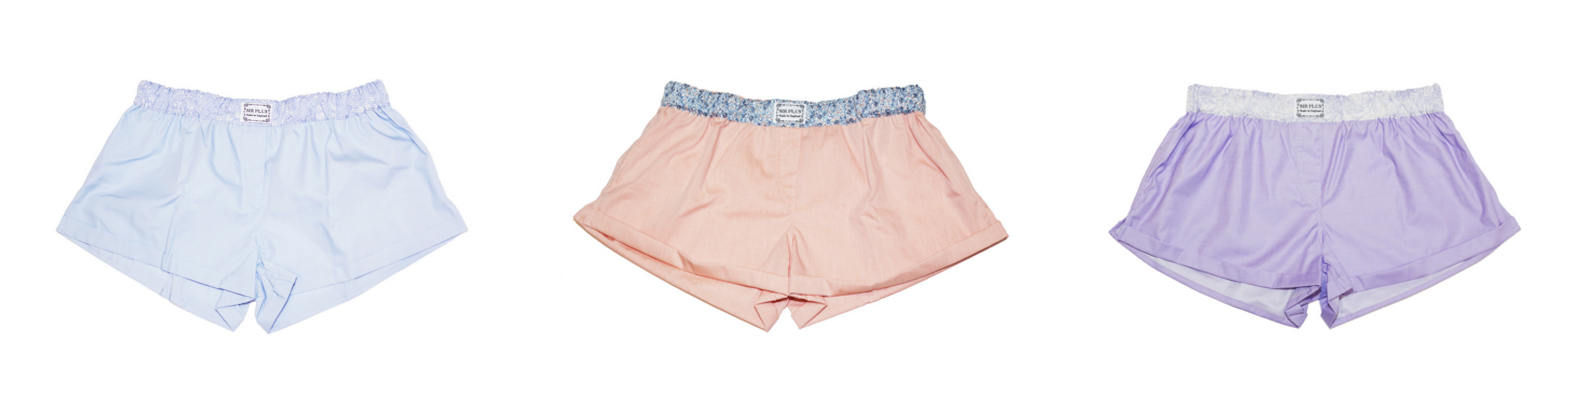 Noteworthy-knickers-boxers-for-women-sir-plus-london-4